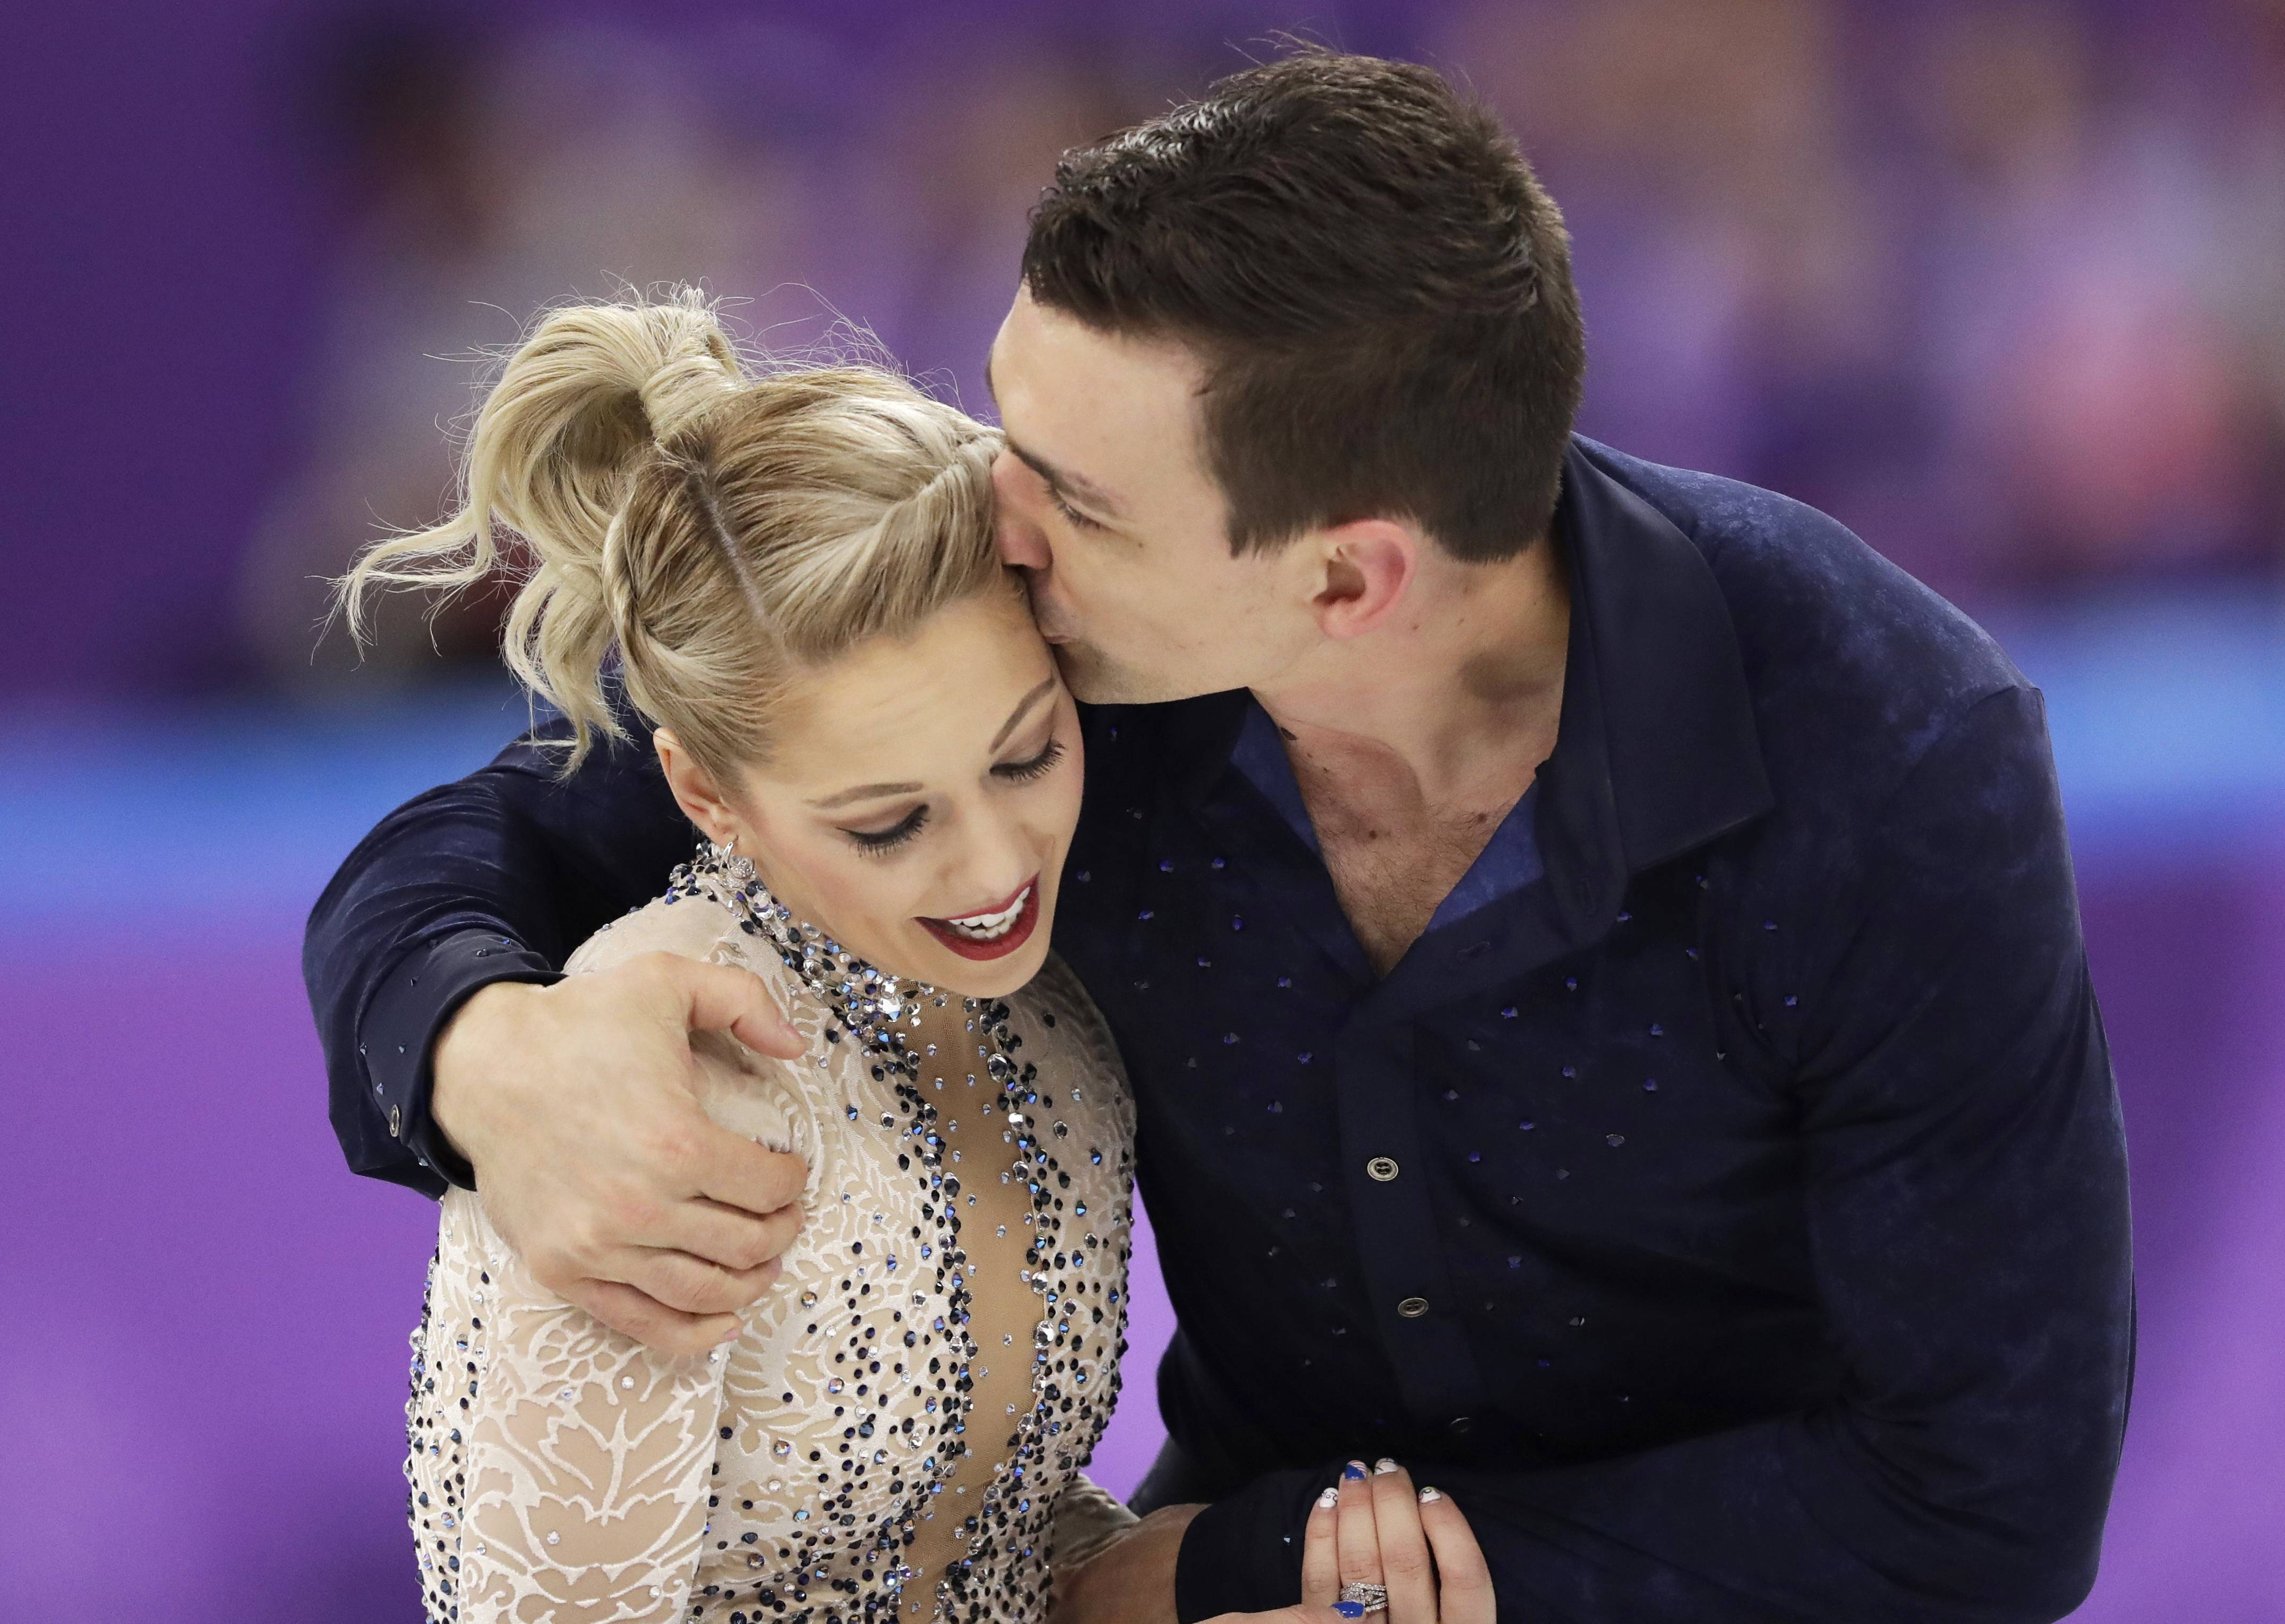 Addison native Alexa Scimeca Knierim and her partner Chris Knierim react after their performance in the pairs figure skating short program in the Gangneung Ice Arena at the 2018 Winter Olympics on Wednesday. The pair scored a 65.55 in the short program, landing them in 14th place. Still the pair says the program is about so much more than their scores.